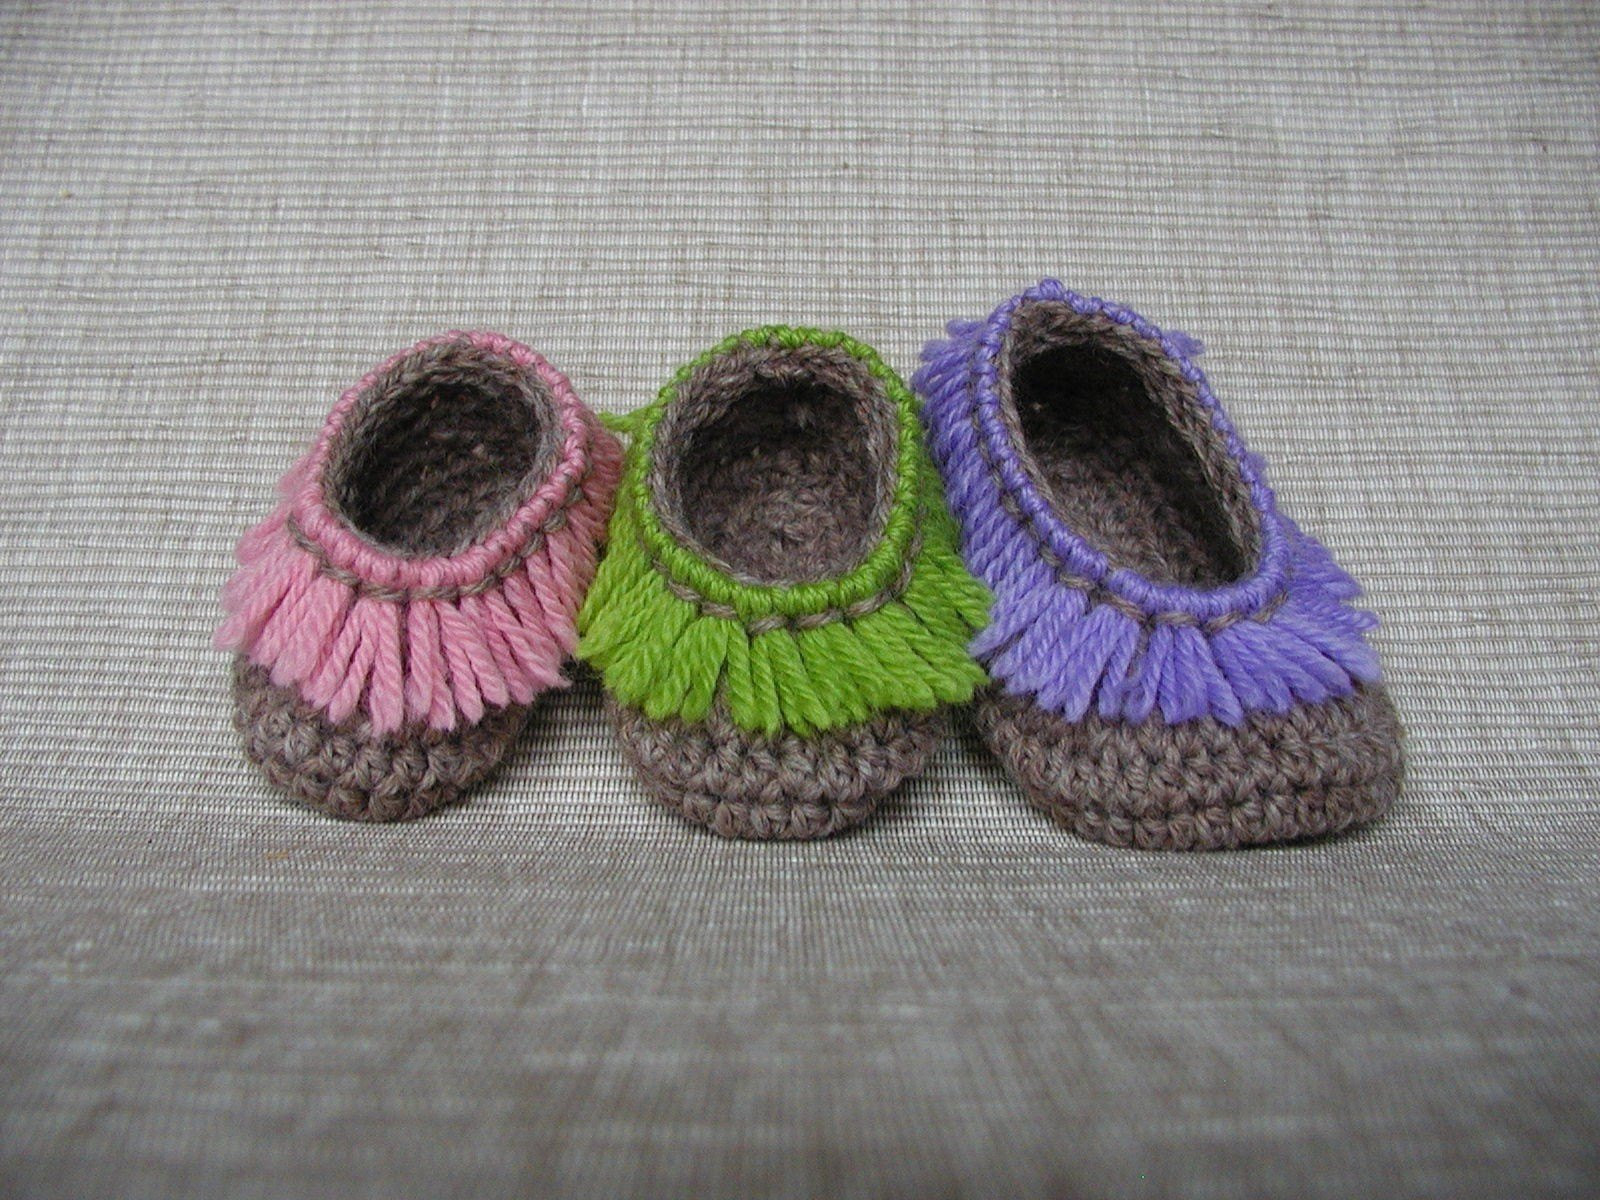 Inspirational Baby Crochet Shoes Free Pattern Free Crochet Patterns for Newborns Of Unique 40 Photos Free Crochet Patterns for Newborns